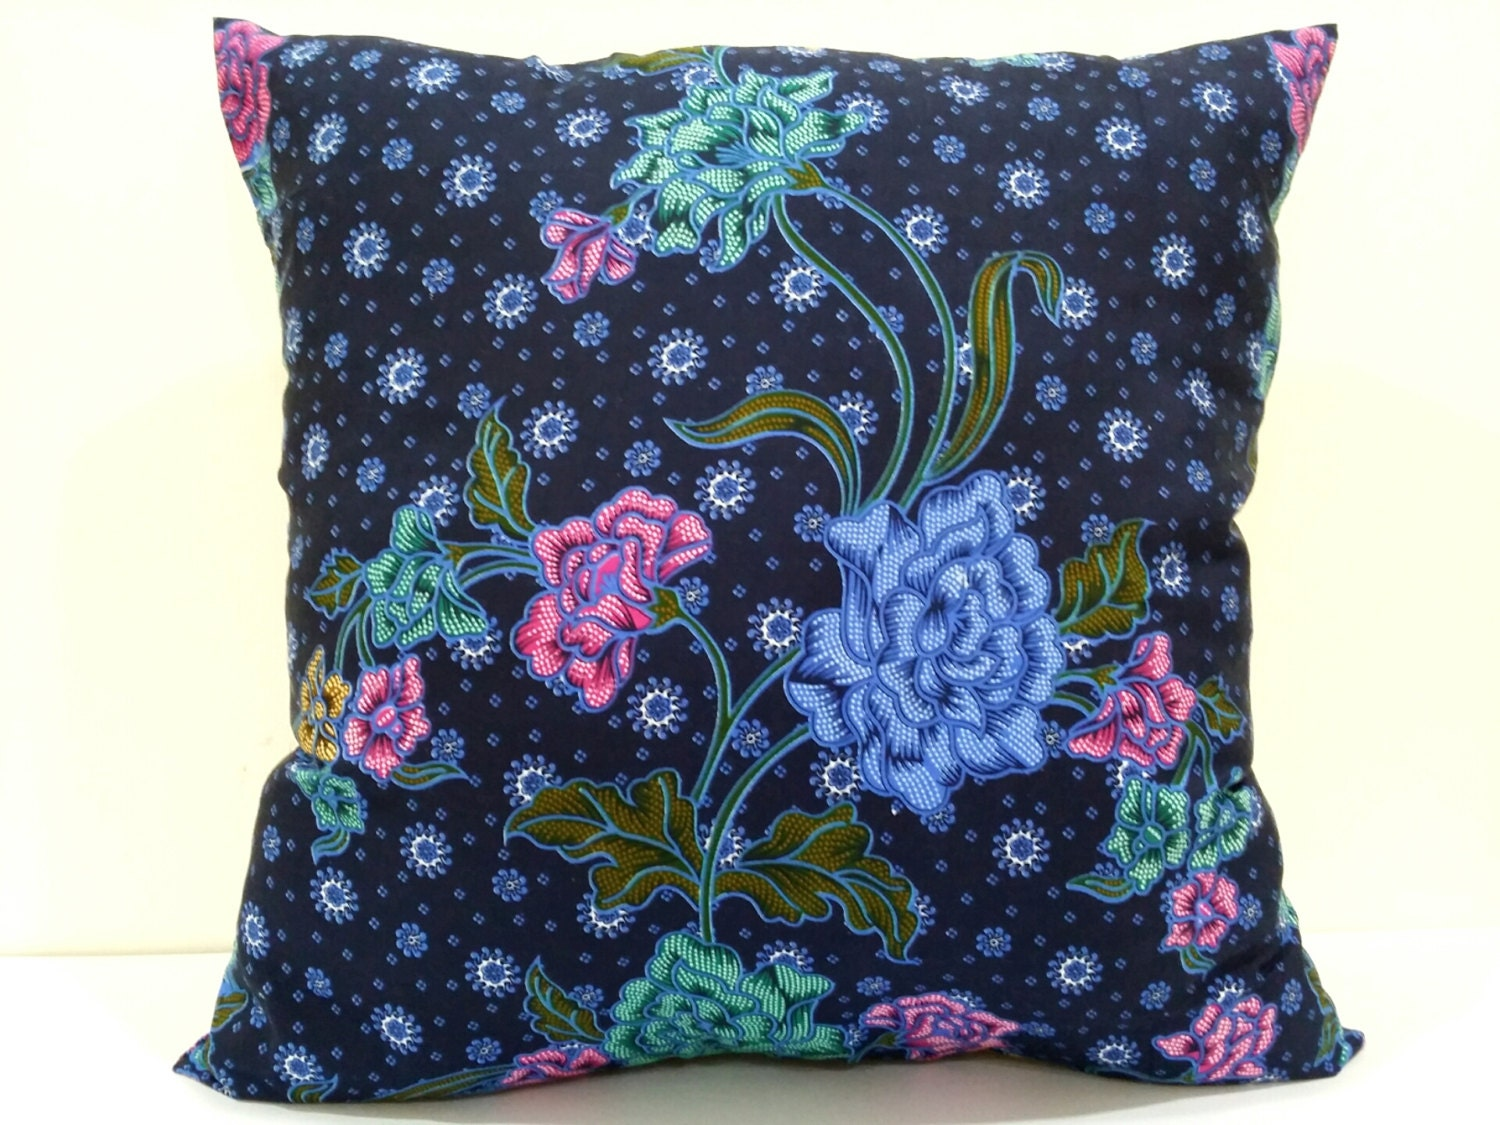 Dark Blue Throw Pillow : Dark Blue Throw Pillows decorative Floral Batik by LyliCraft